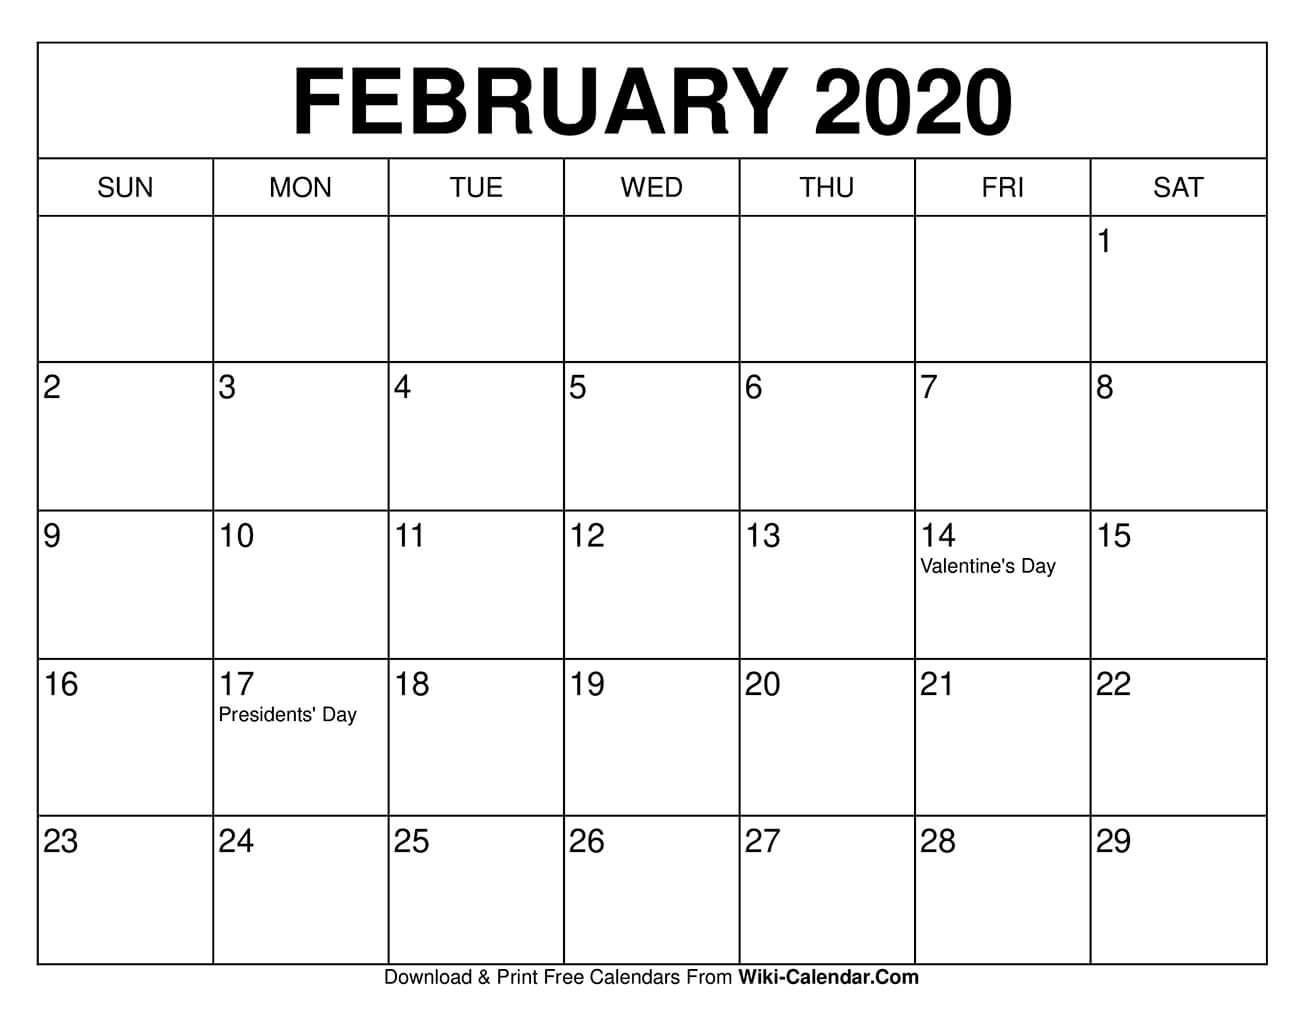 Free Printable February 2020 Calendars  Download 2020 Blank Calendar Printable